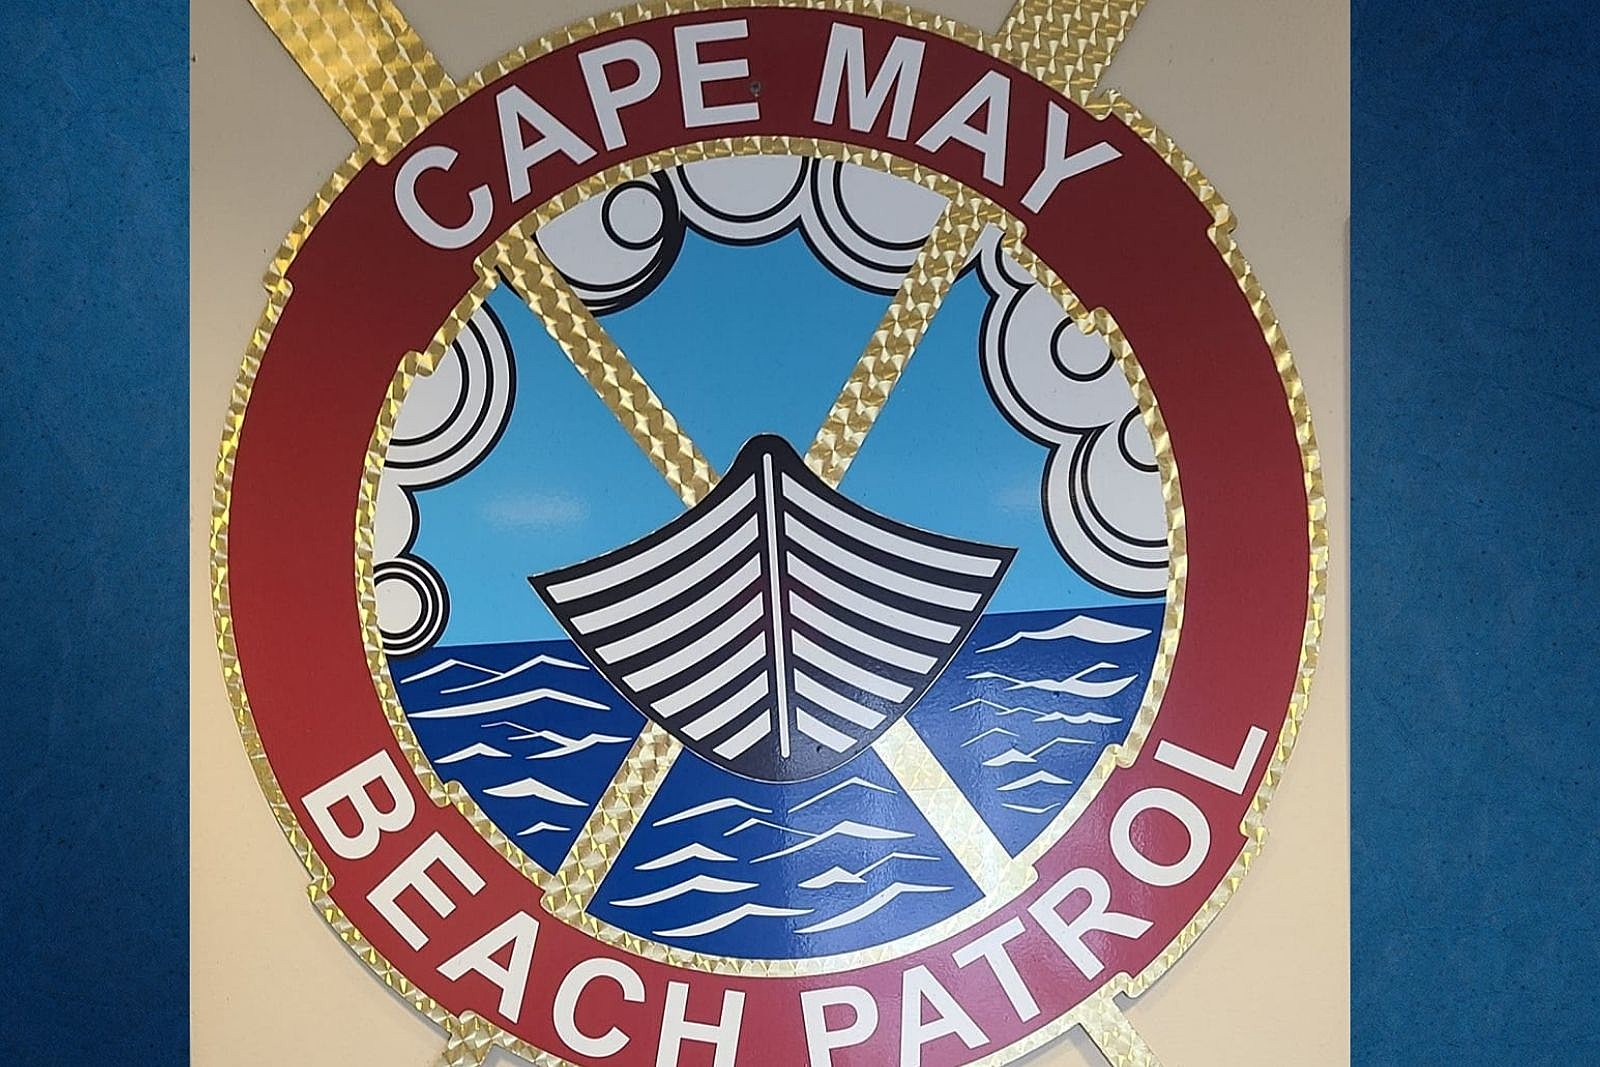 Cape May, NJ teen lifeguard death sparks concern about surfboats